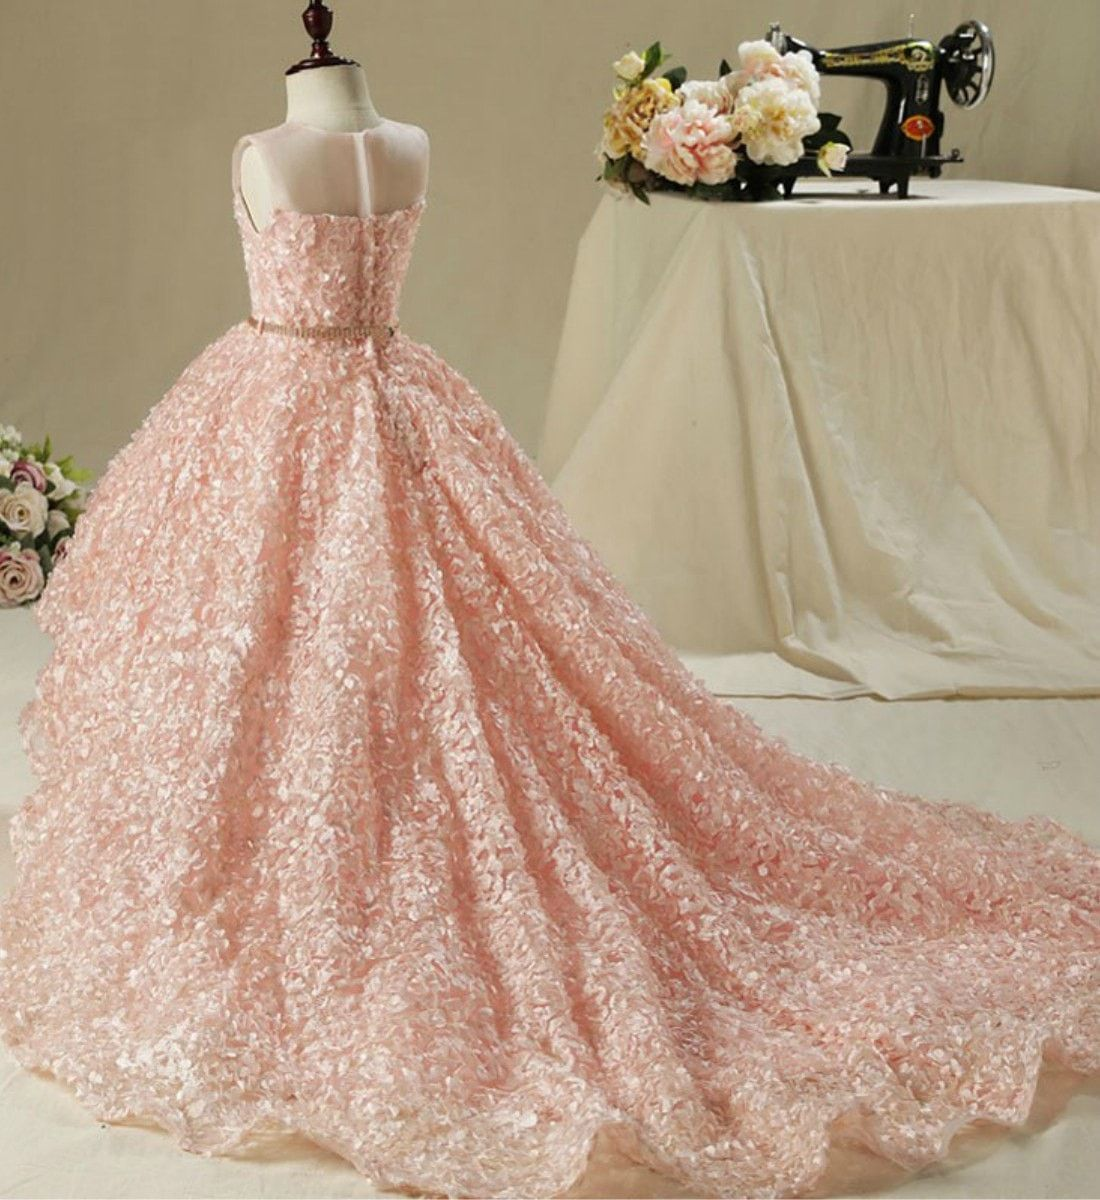 Gold Embroidery Flower Wedding Ball Gown Birthday Costume Princess Dress